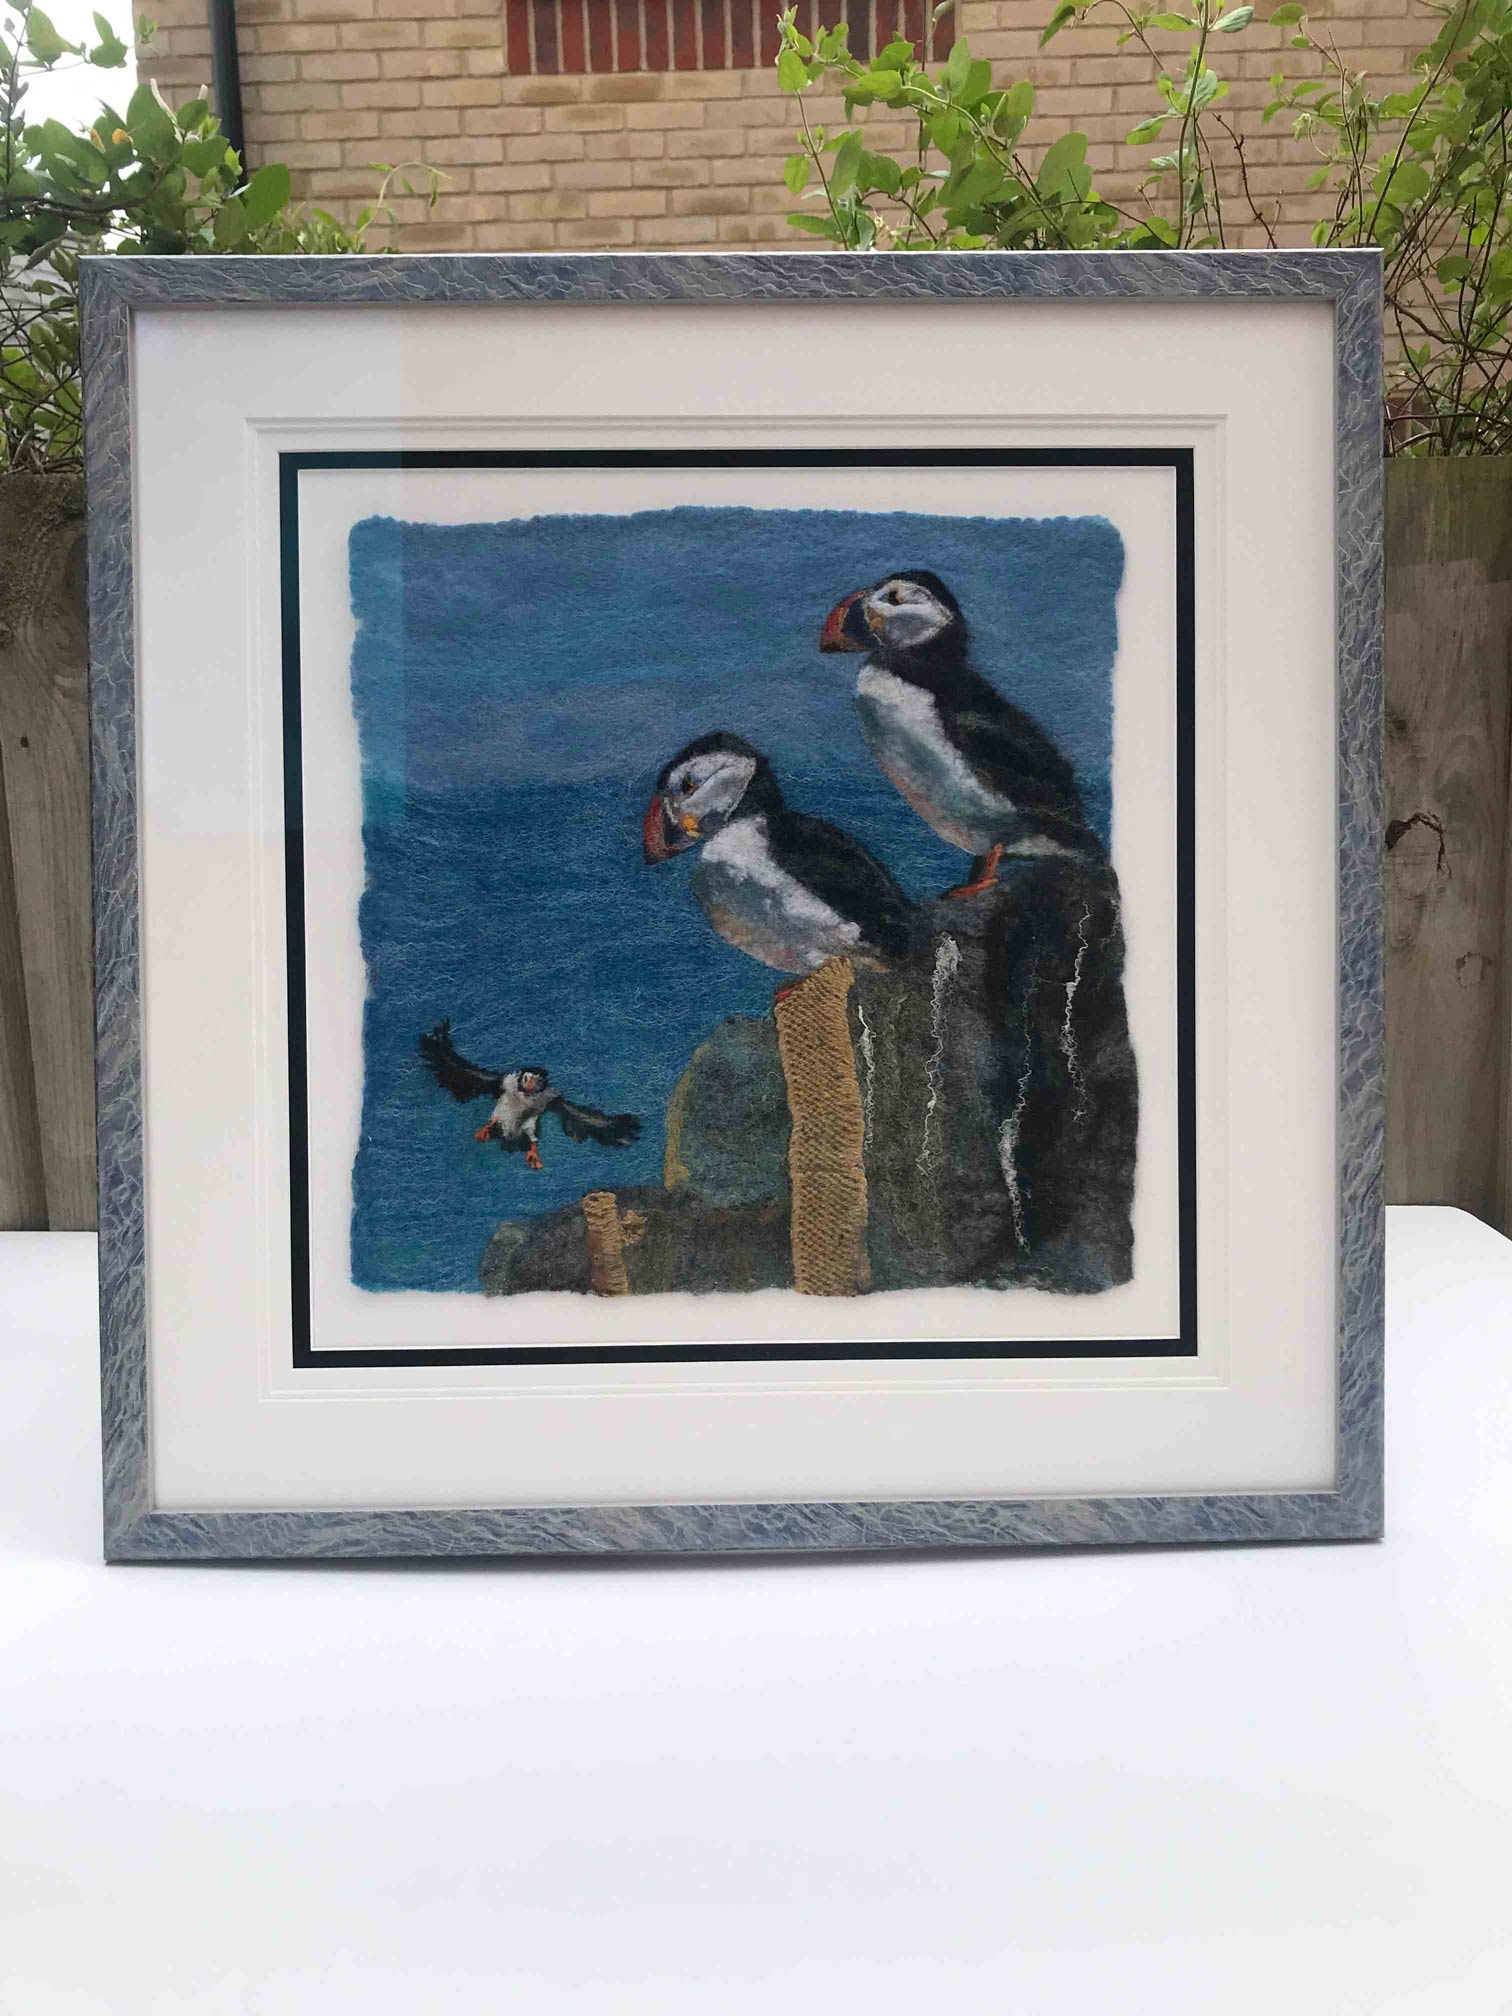 Framed Picture of Puffins